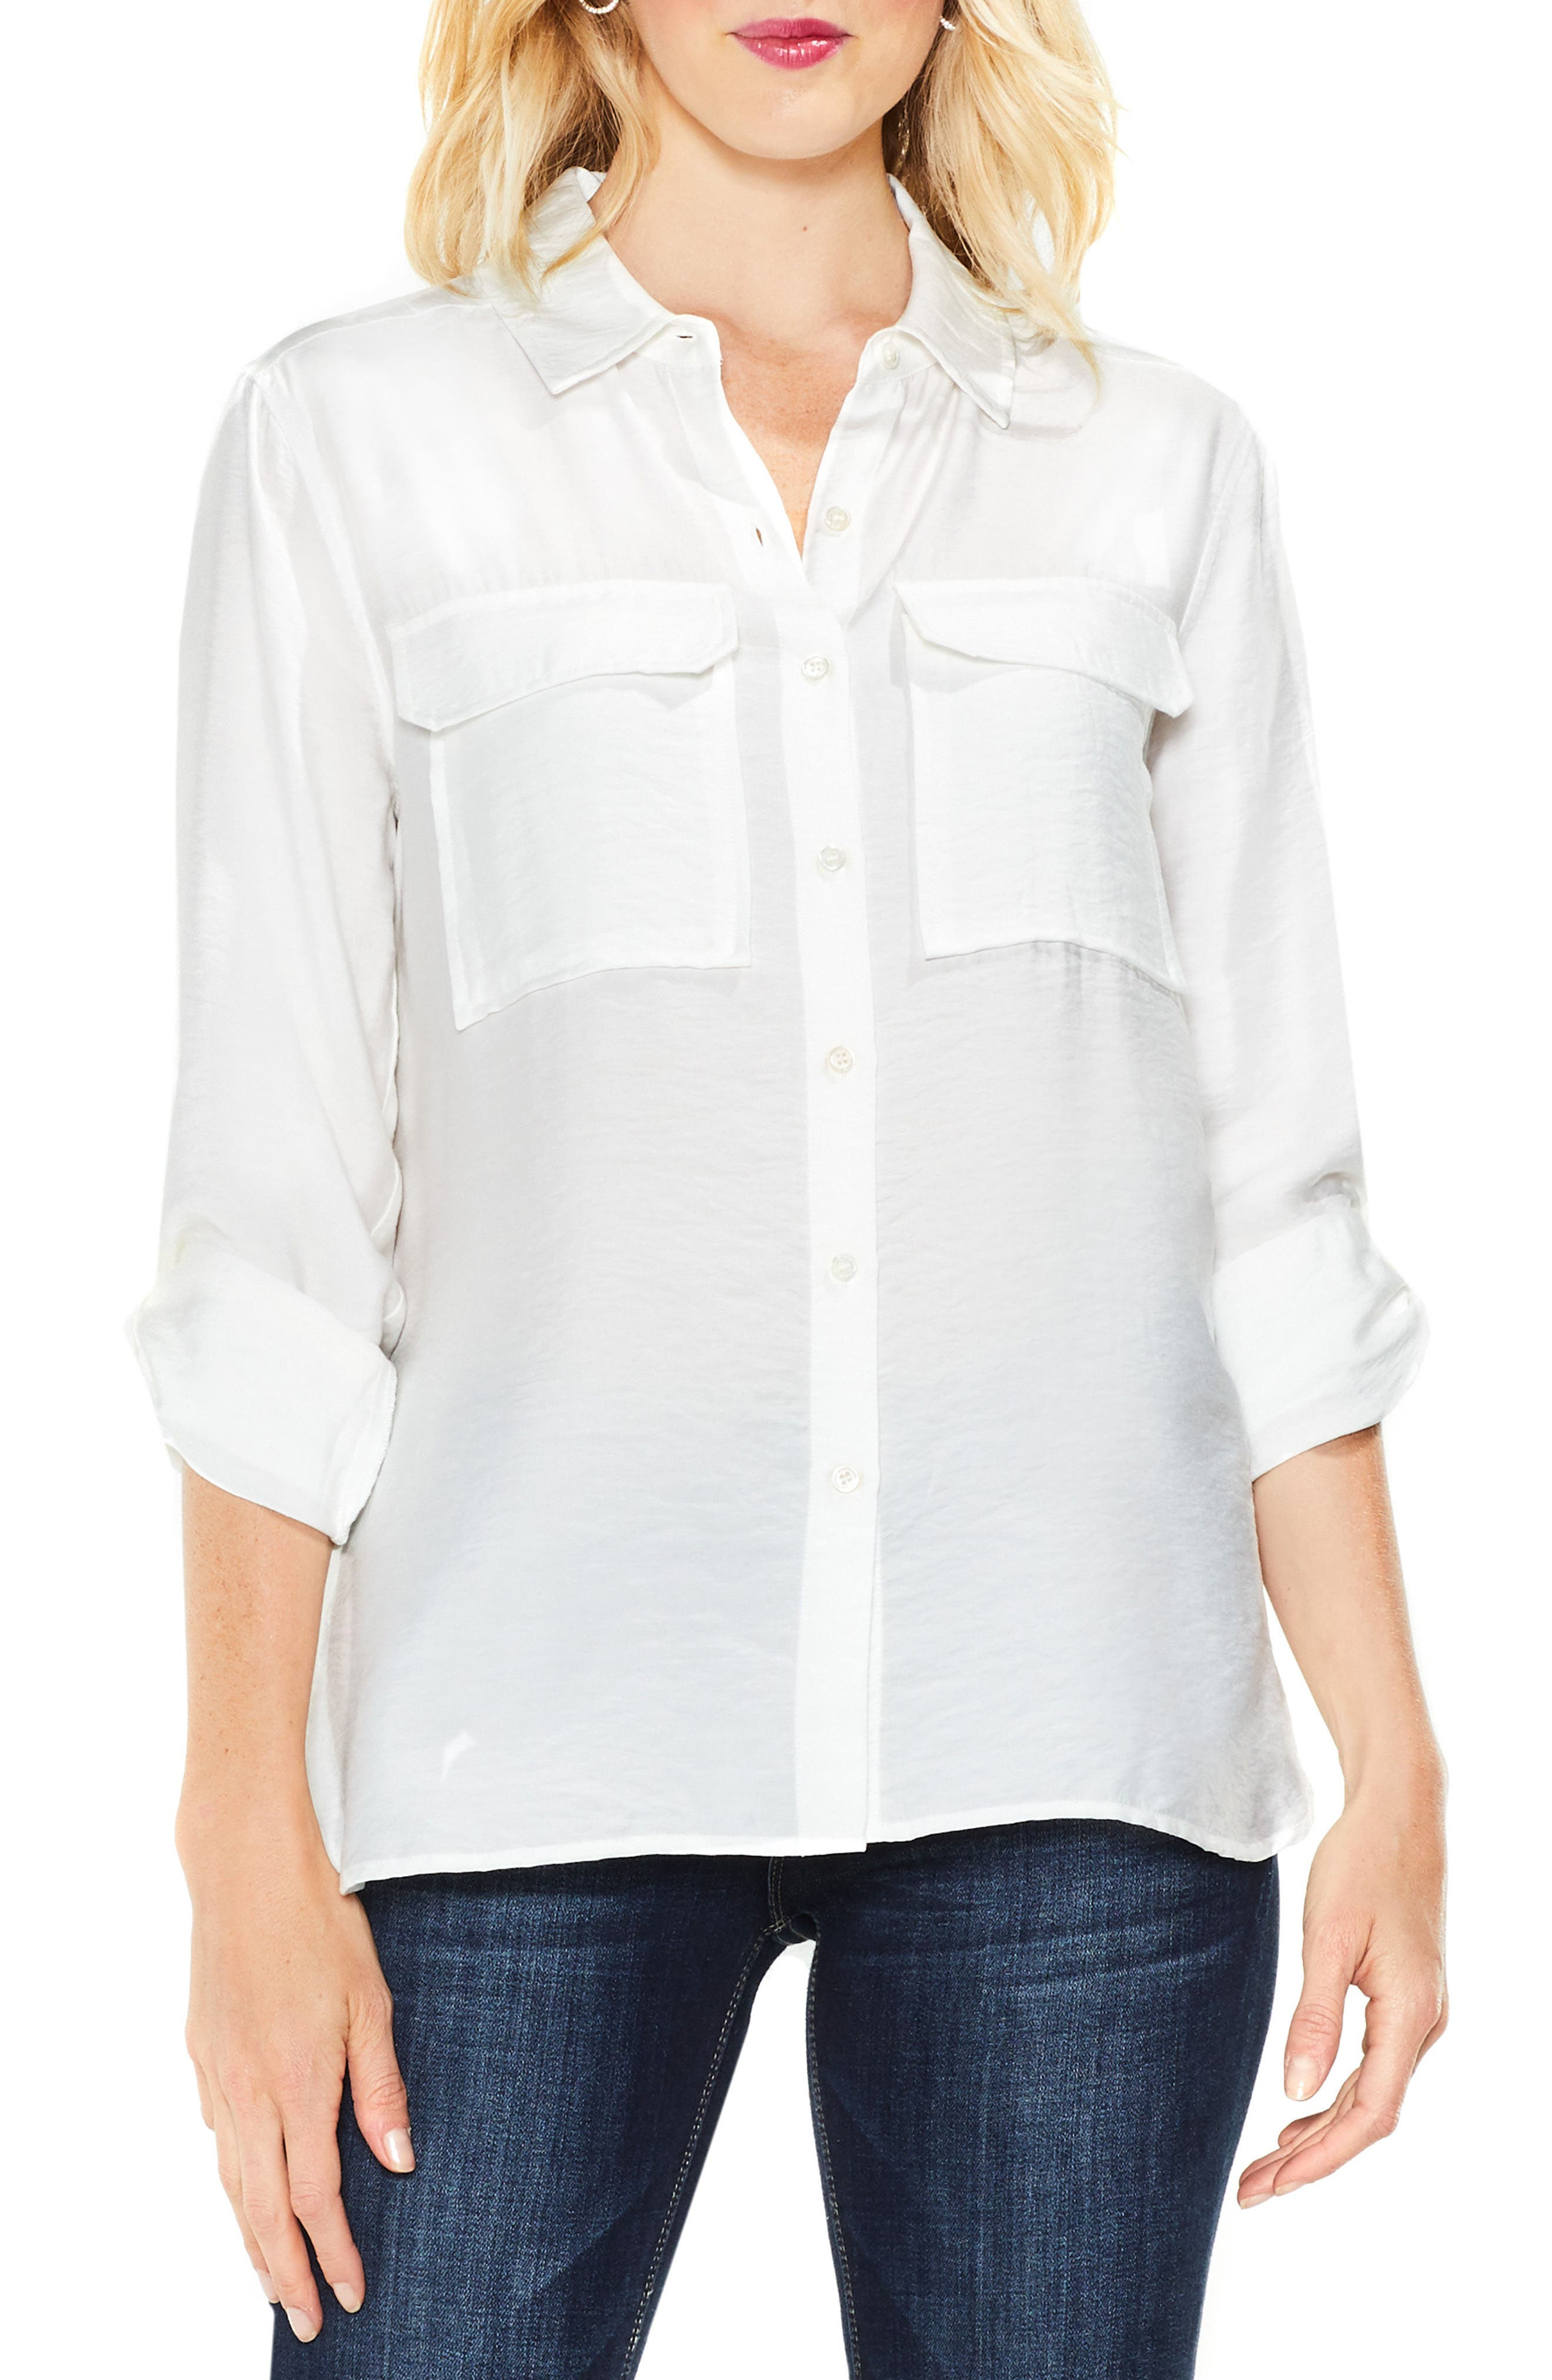 Alternate Image 1 Selected - Two by Vince Camuto Hammered Satin Utility Shirt (Regular & Petite)